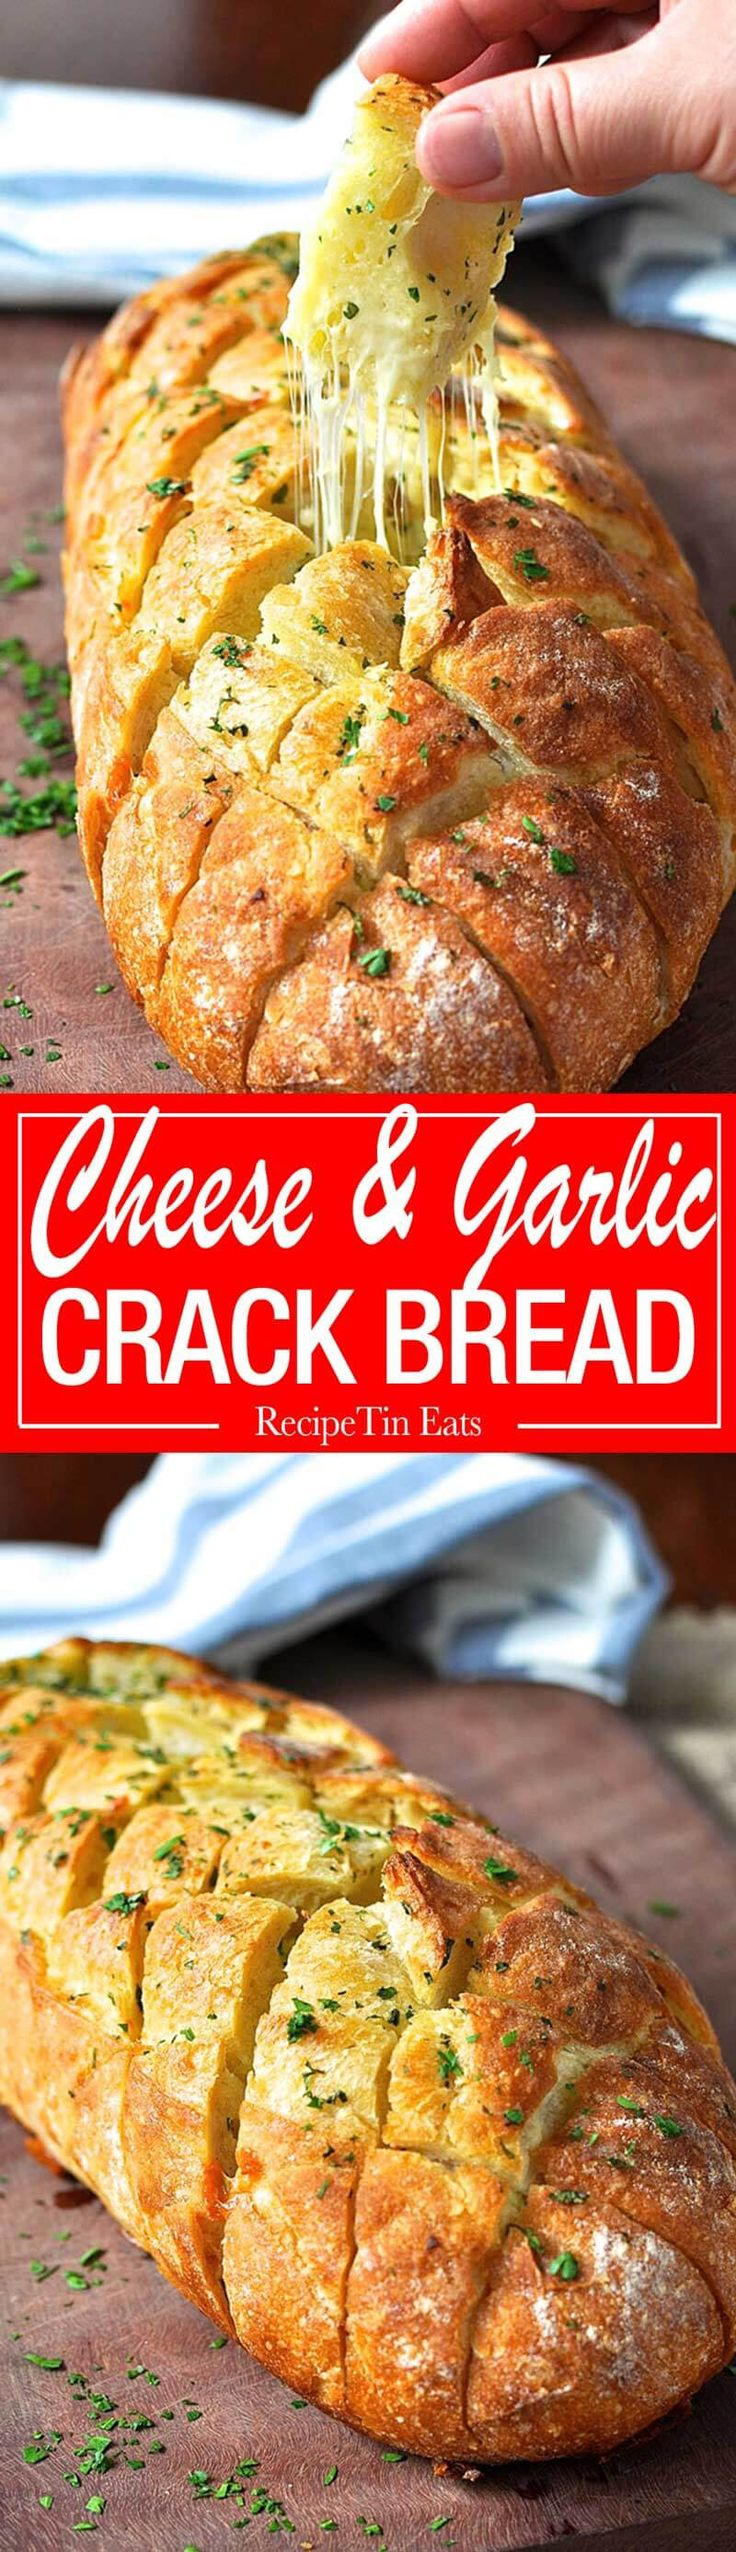 Cheese and garlic crack bread – this cheesy garlic bread is outta this world…